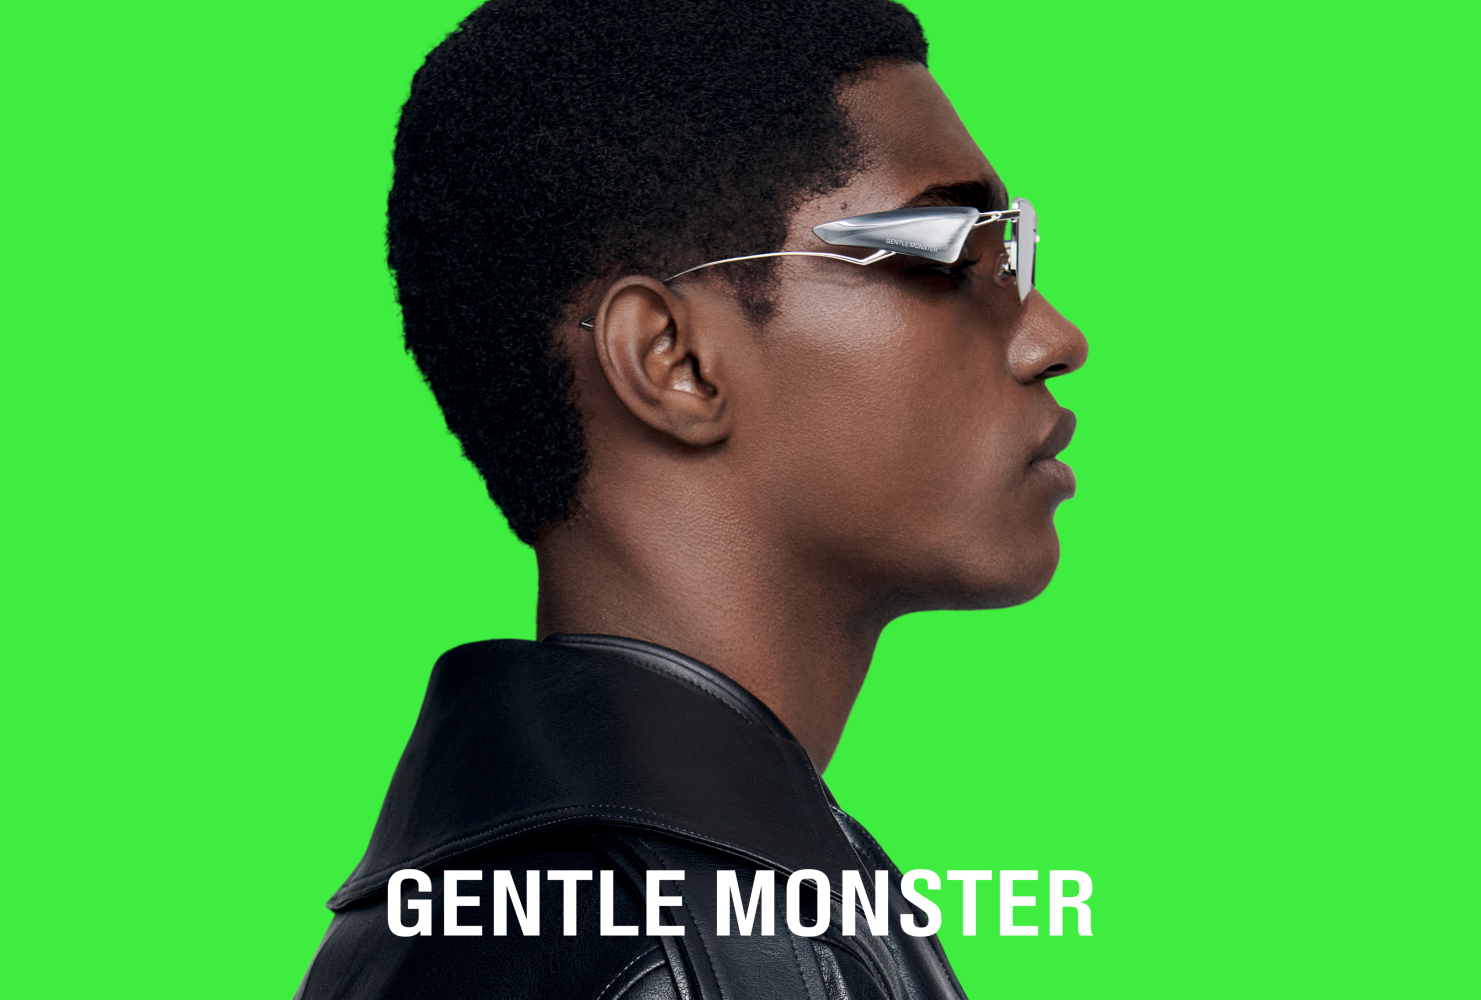 DIOGO GOMES: GENTLE MONSTER 2021 COLLECTION CAMPAIGN